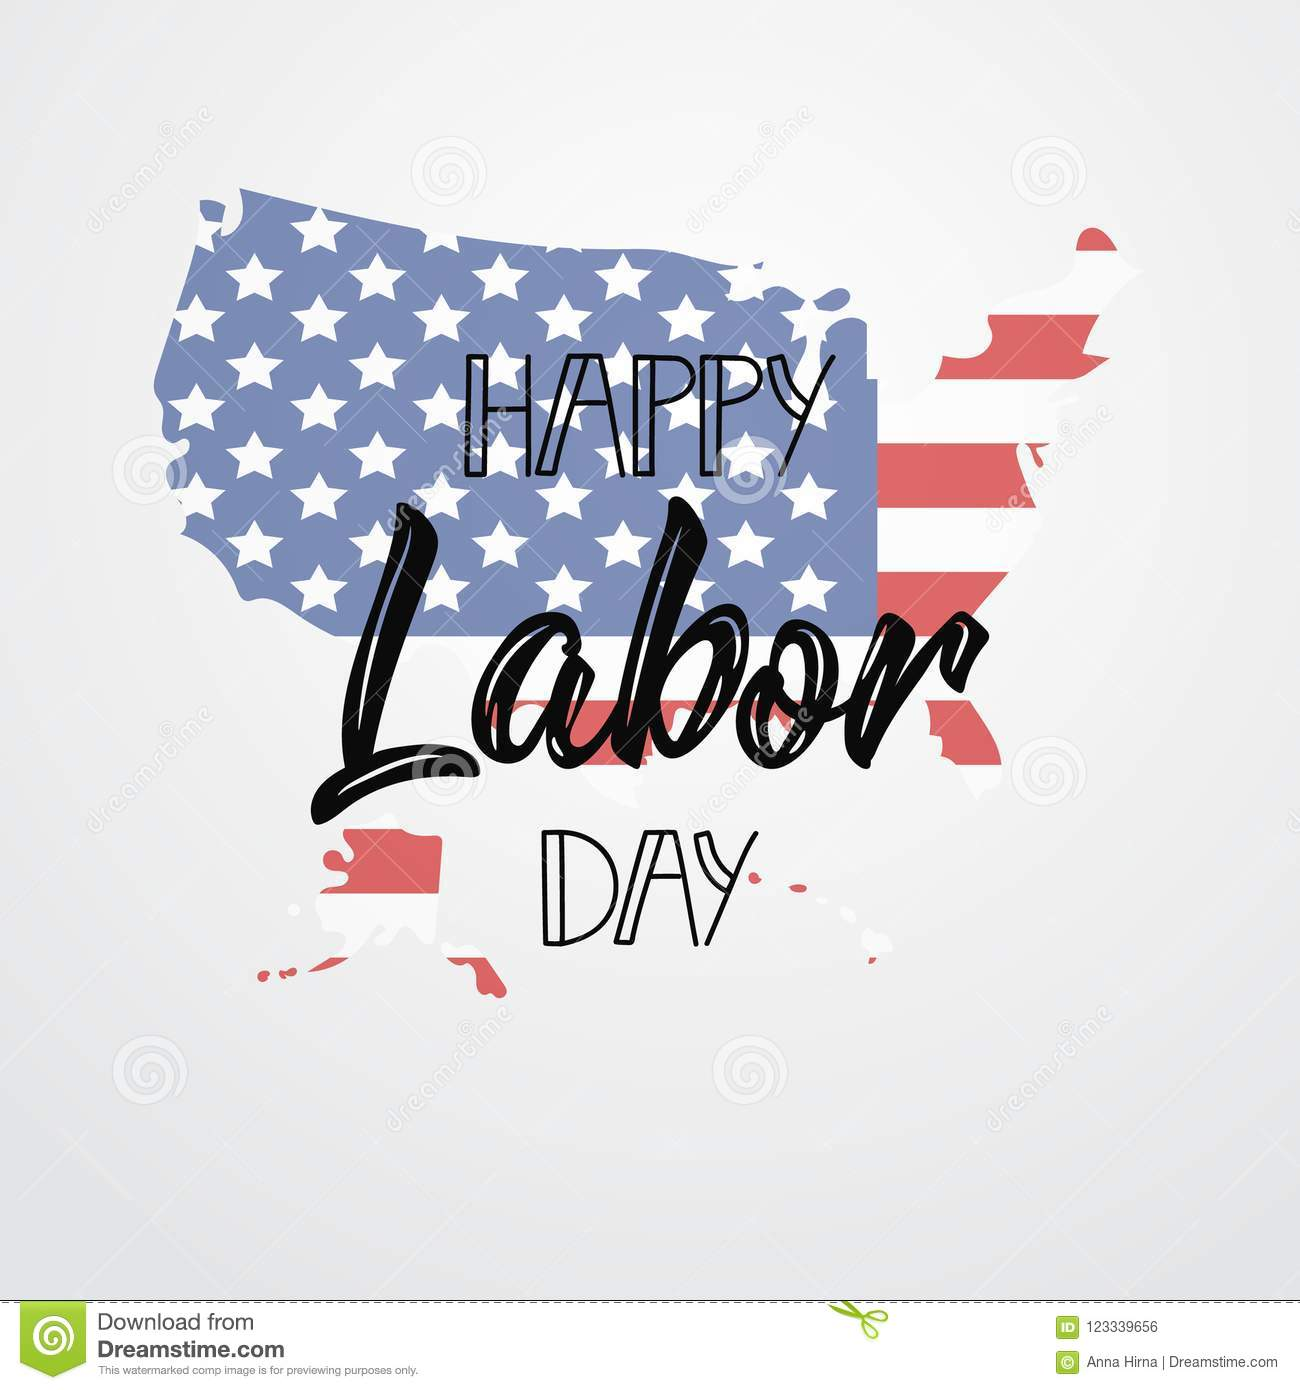 Happy Labor Day Lettering Background Graphic Design For